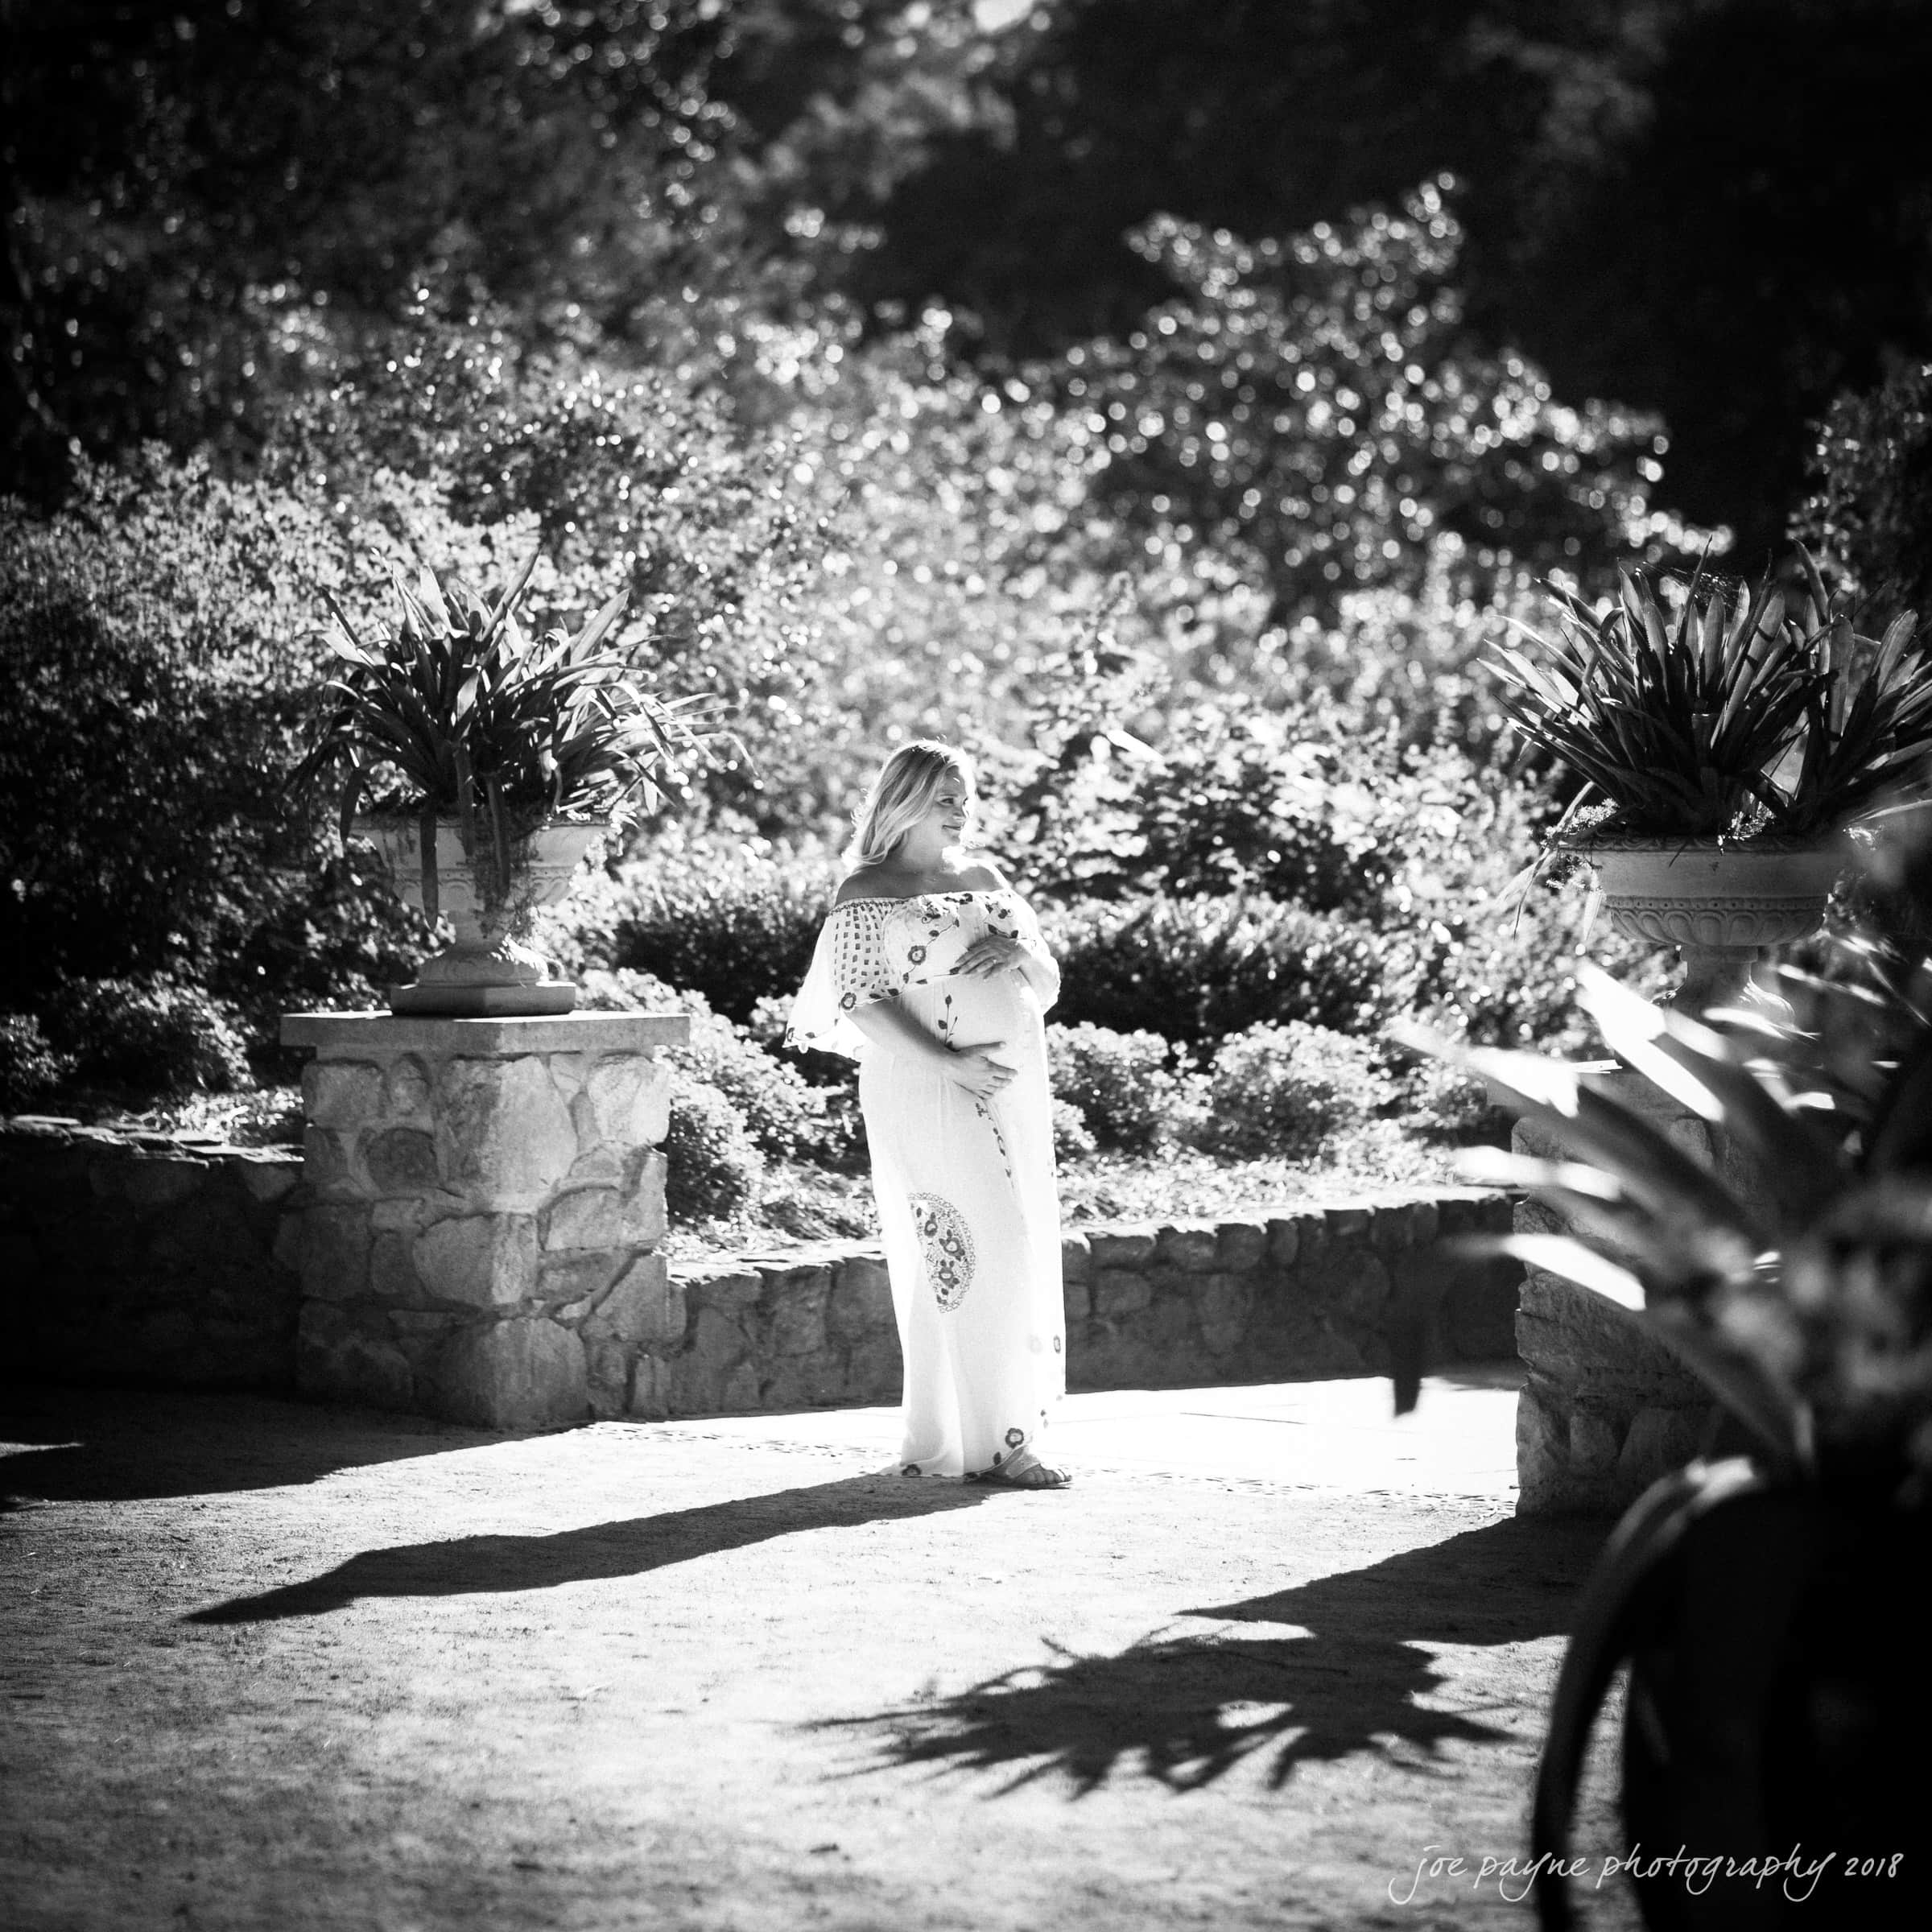 aleigh-Maternity-Photographer-Hallie-Cullen-5 duke gardens maternity session - hallie & cullen